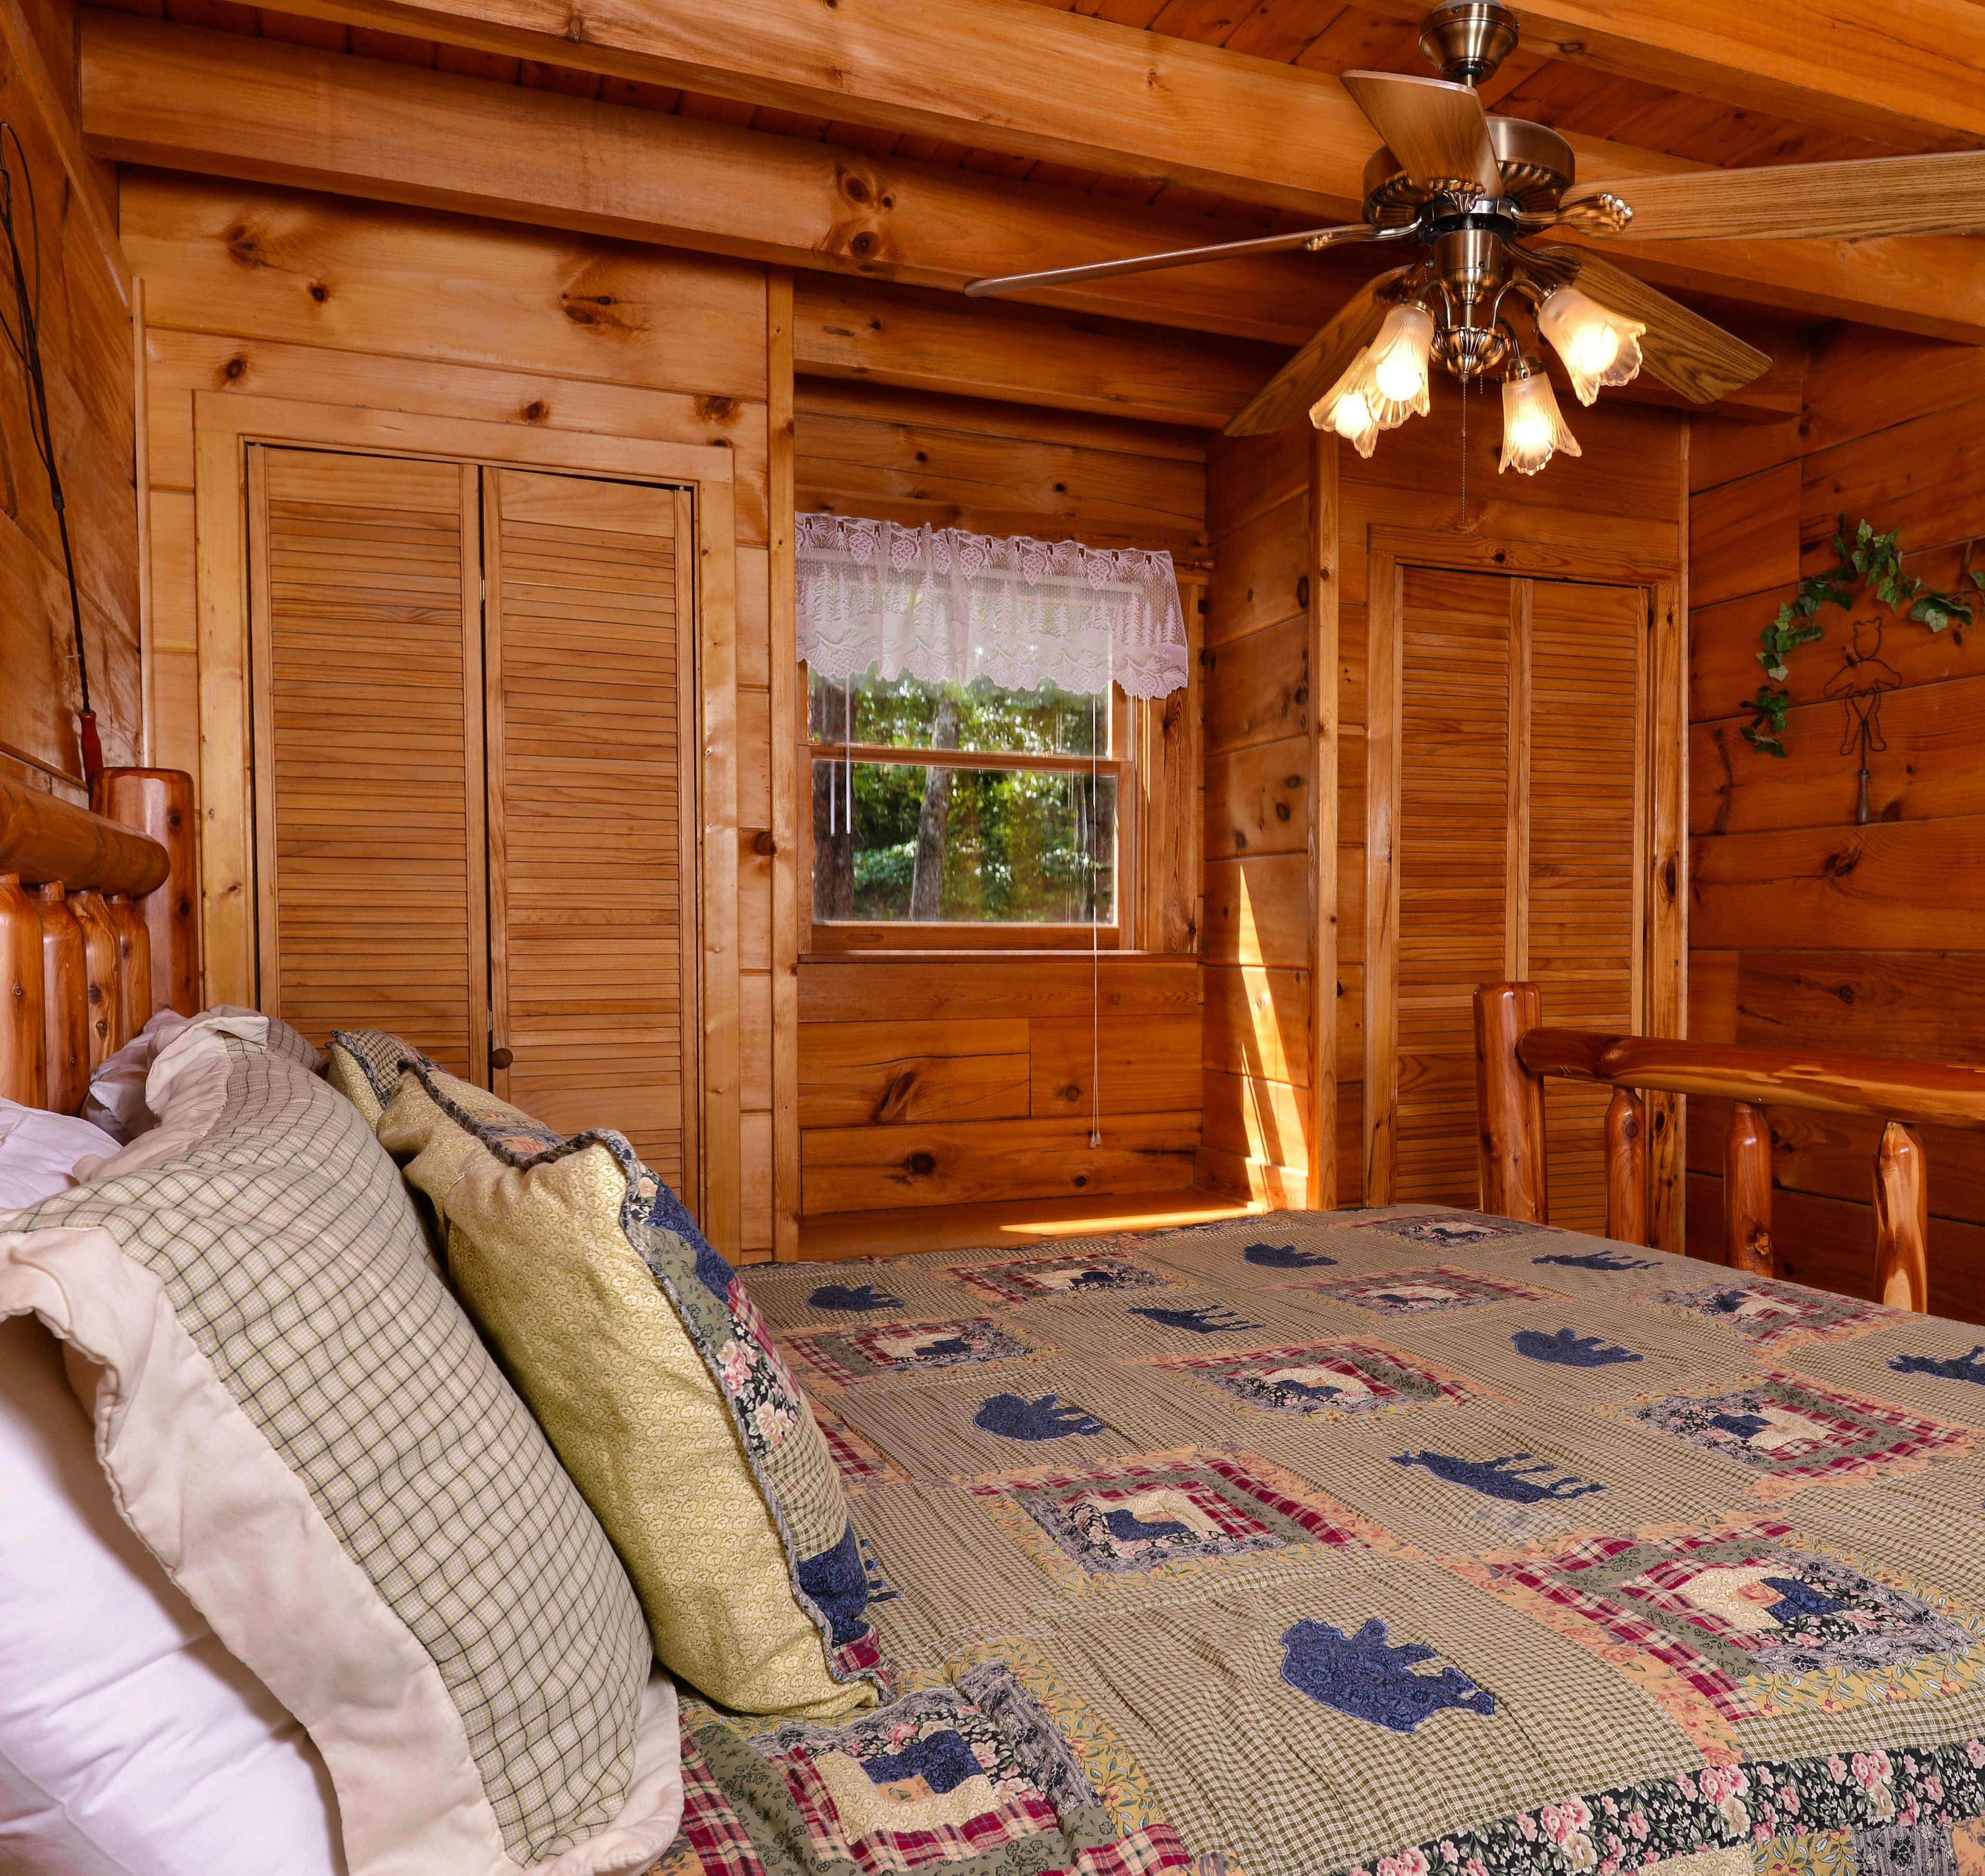 pigeon large accommodating forge we groups spatable affordable for have clusters different tennessee six cabin cabins